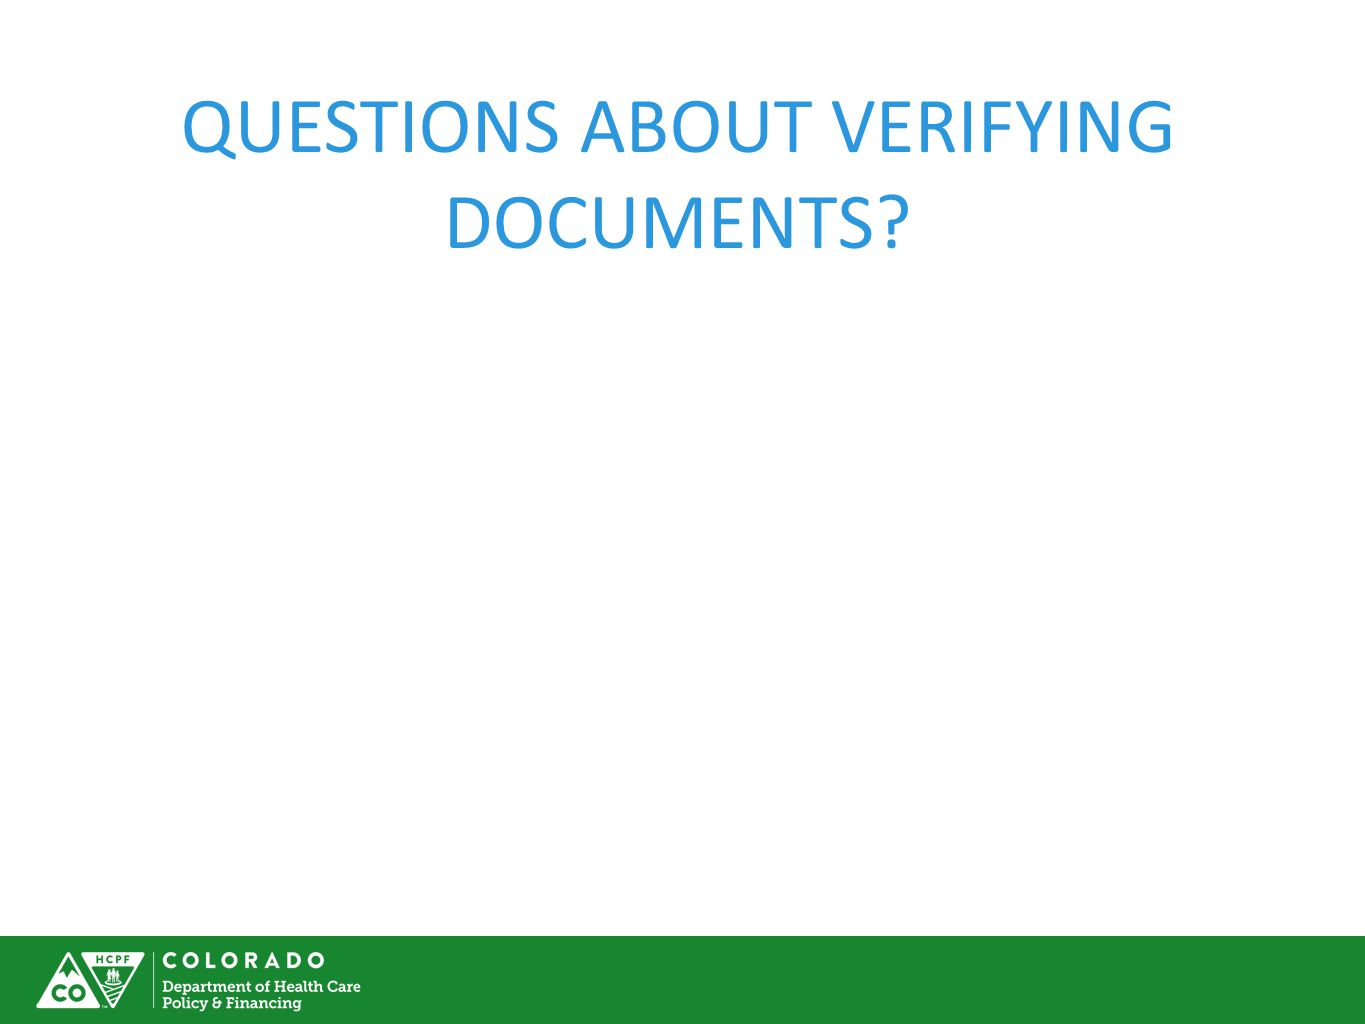 QUESTIONS ABOUT VERIFYING DOCUMENTS